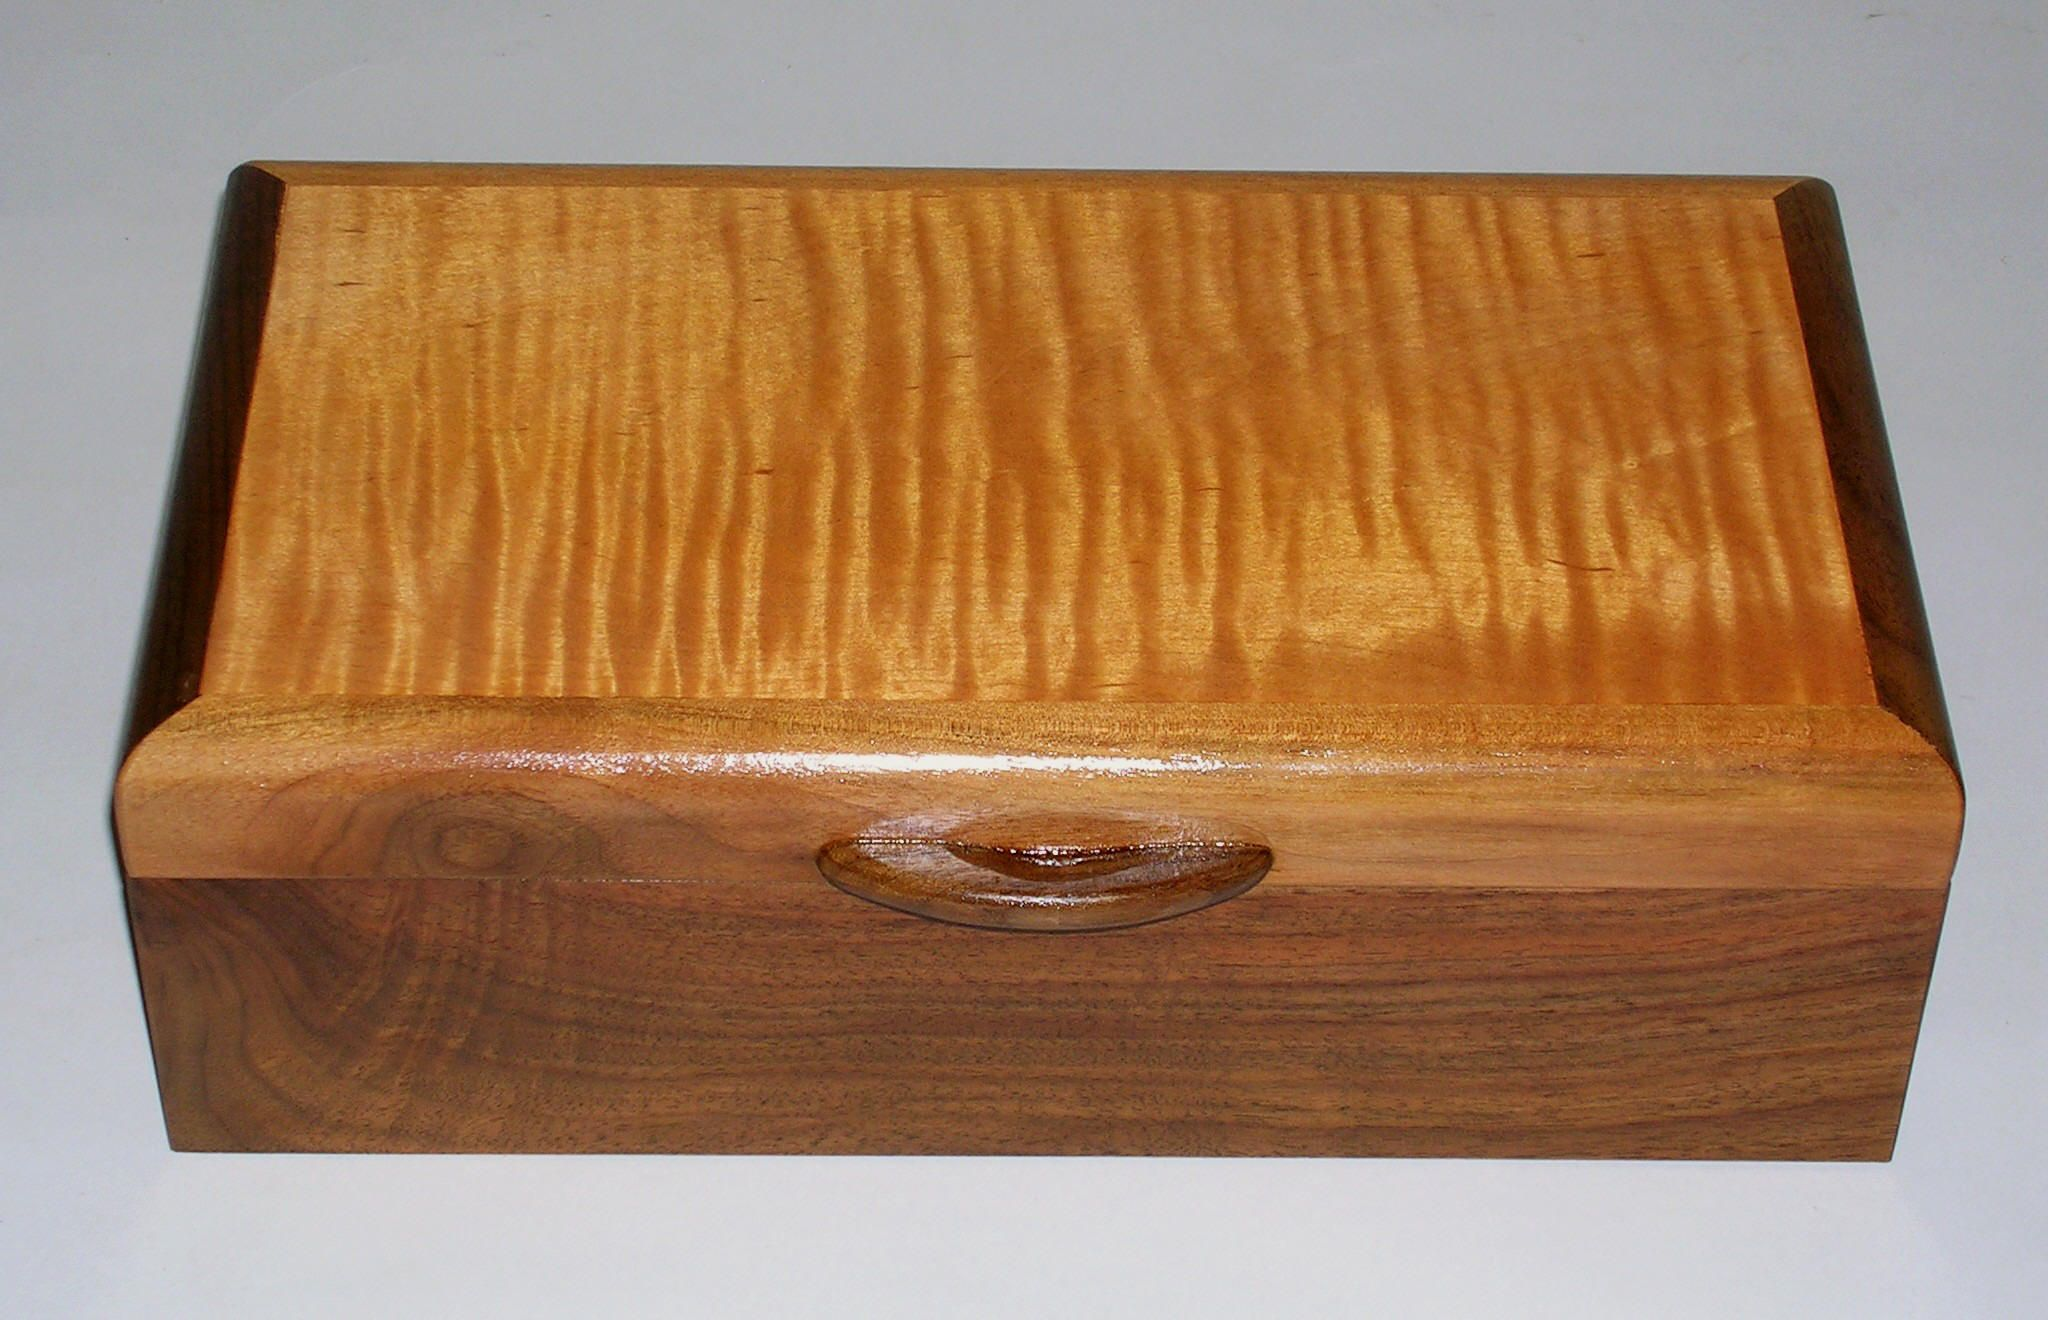 Fine Handcrafted Wooden Jewelry Boxes for Men 7 14 4 200 Boxes